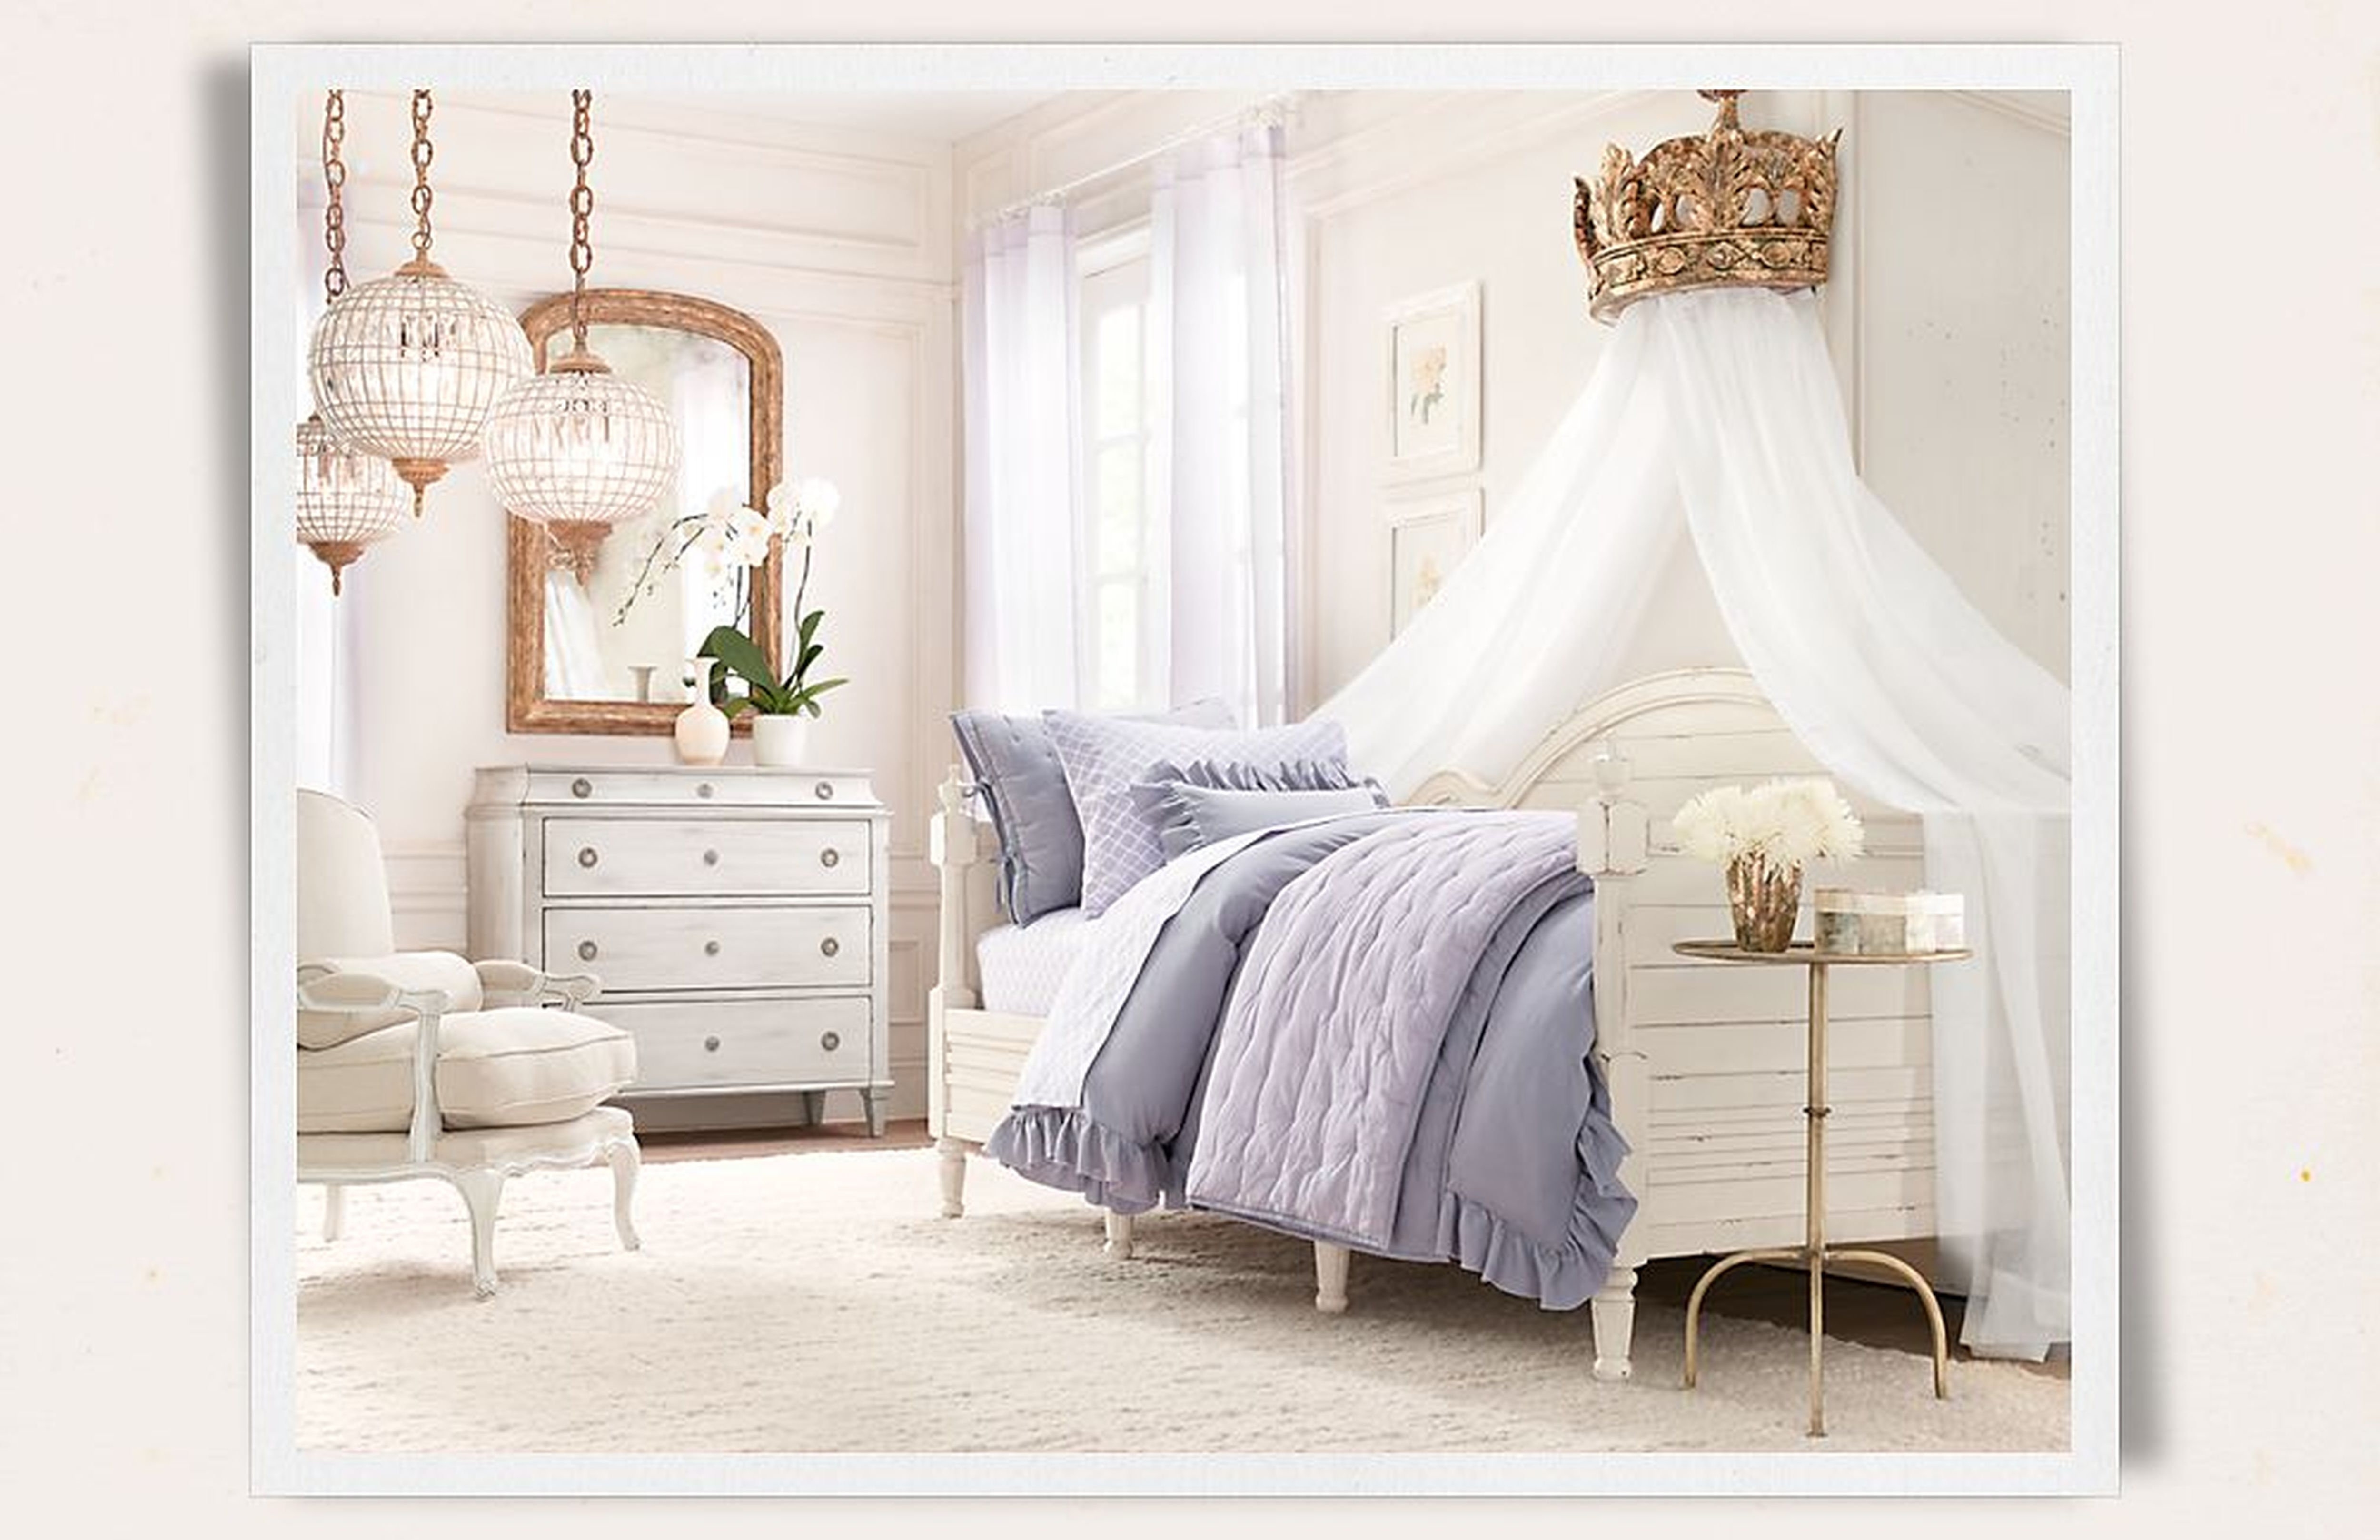 Girls Room Chandeliers Deluxe Kids For Baby White And Crystal In 2018 Crystal Chandeliers For Baby Girl Room (View 10 of 20)